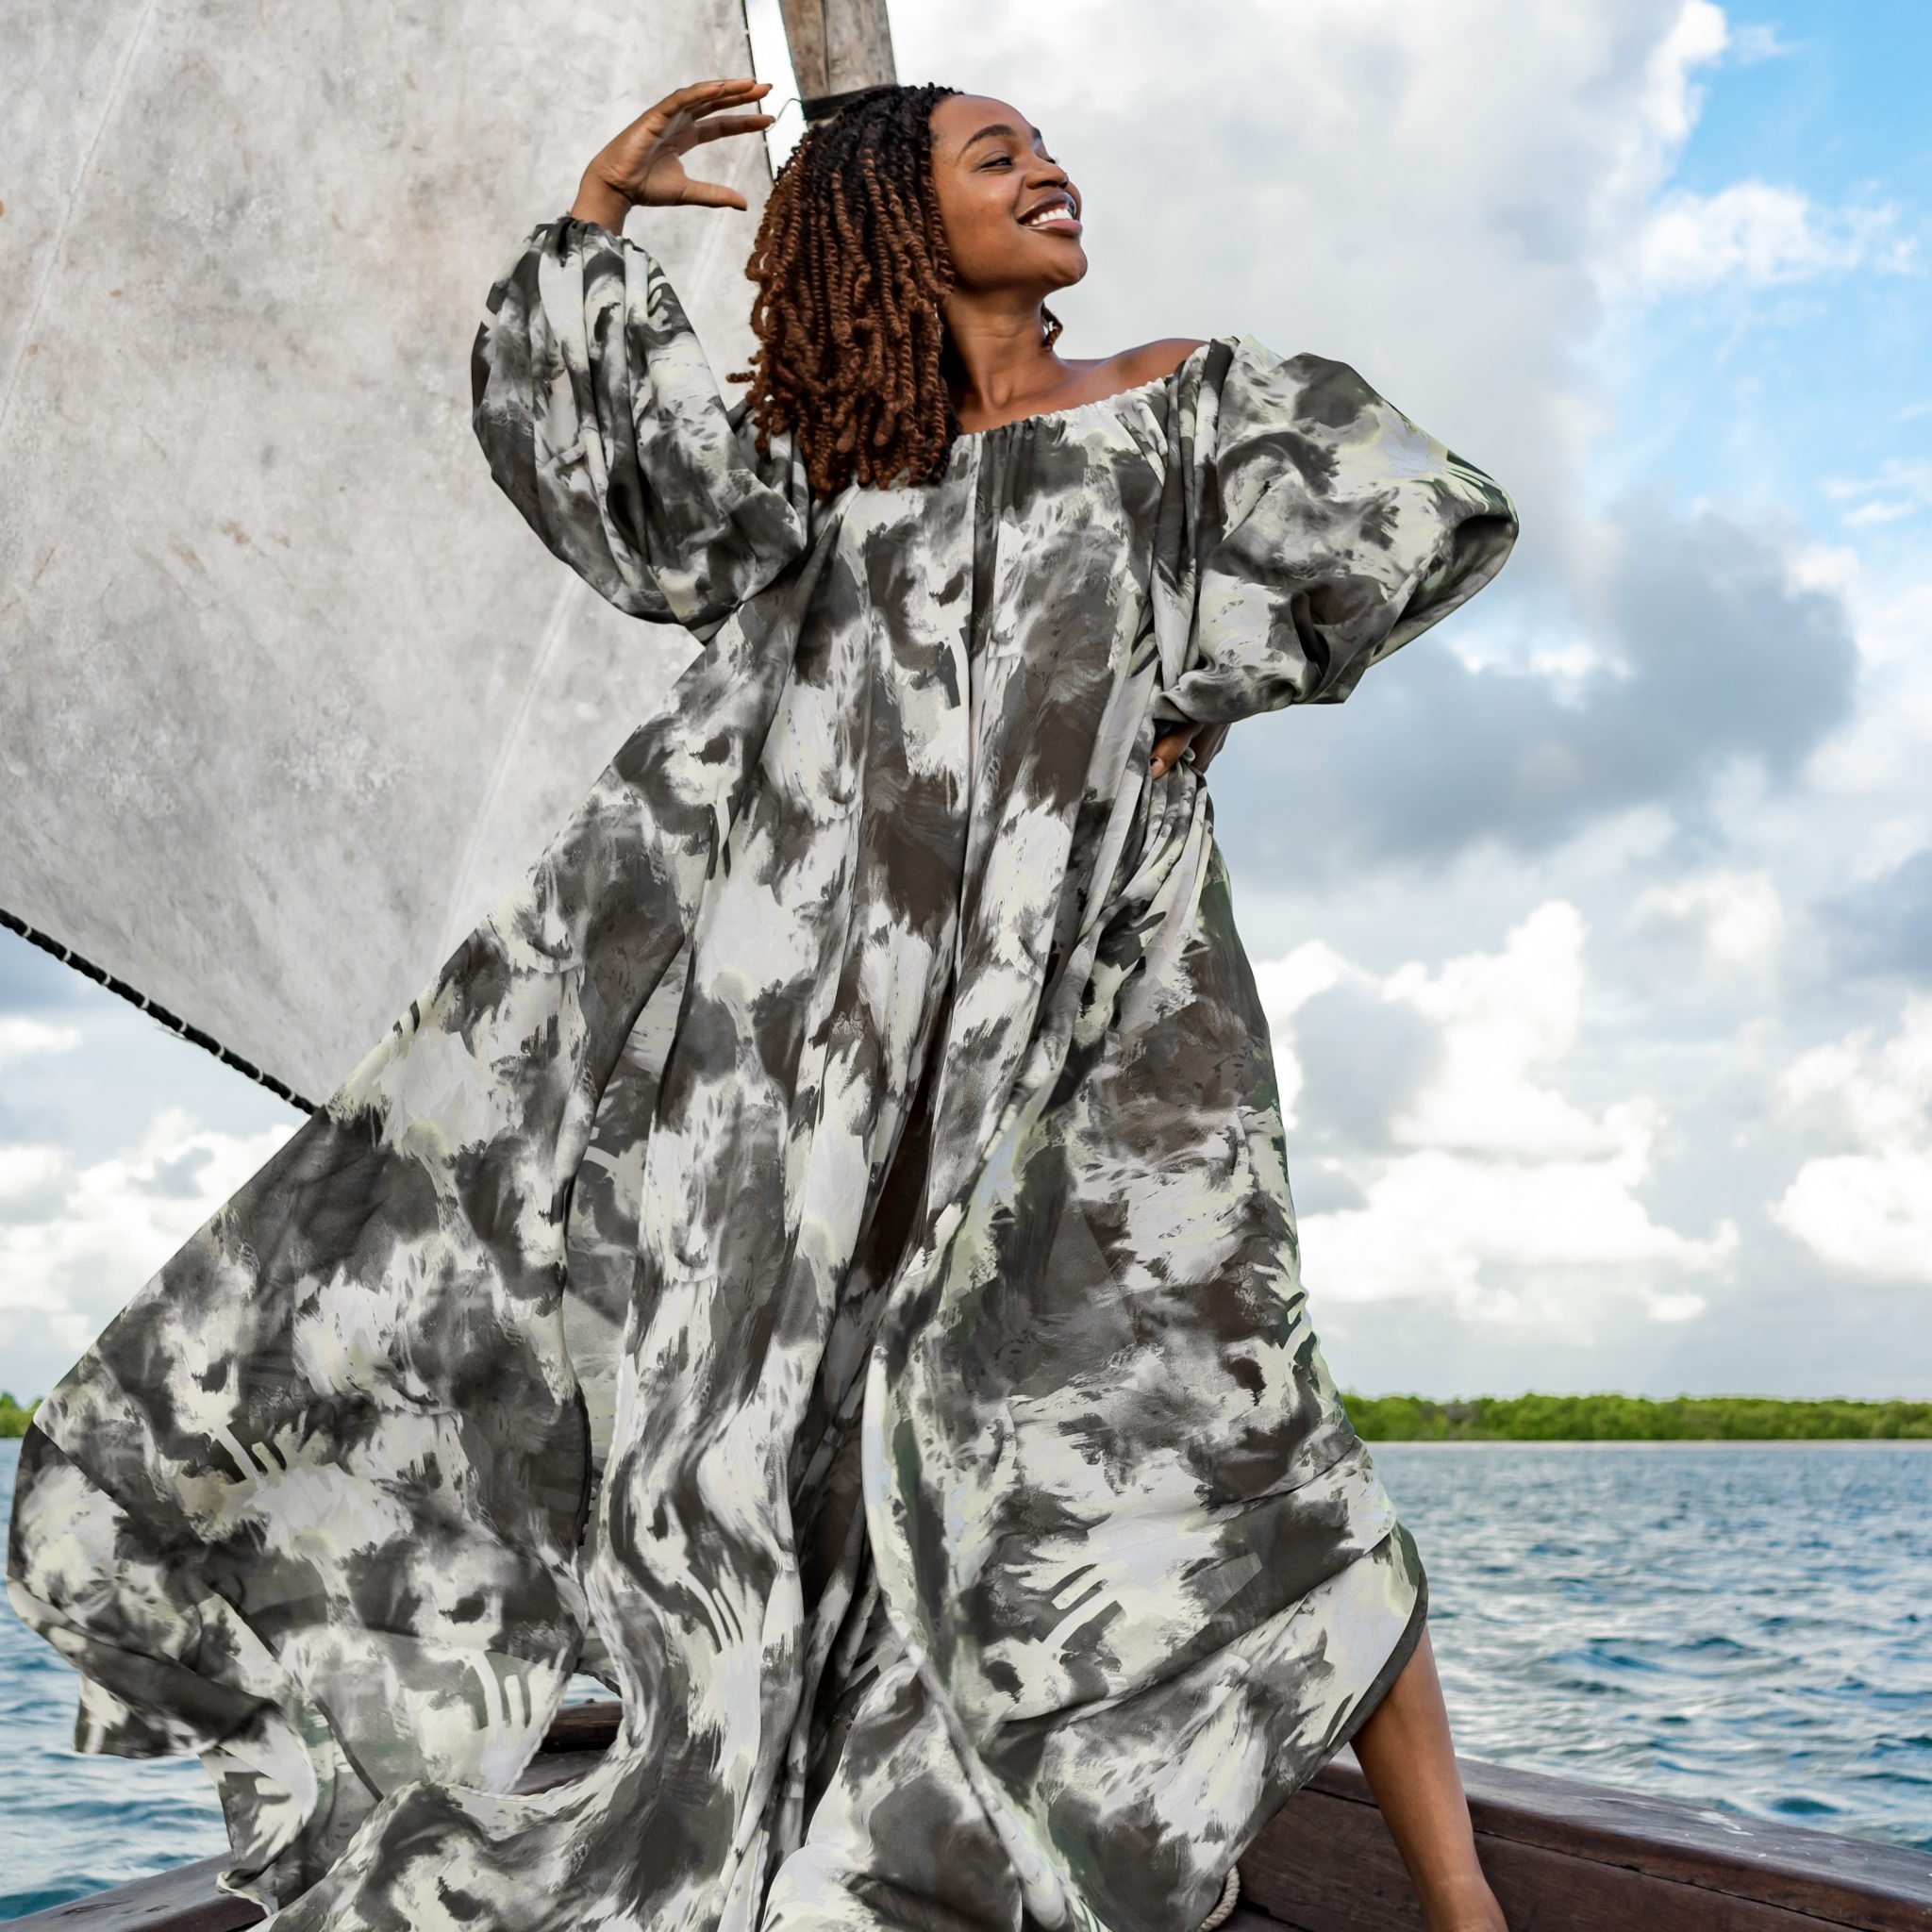 Ijeoma Kola in print dress on boat - Featured Image for October Q&A on Mom Guilt, Baby Weaning, US Elections and More!